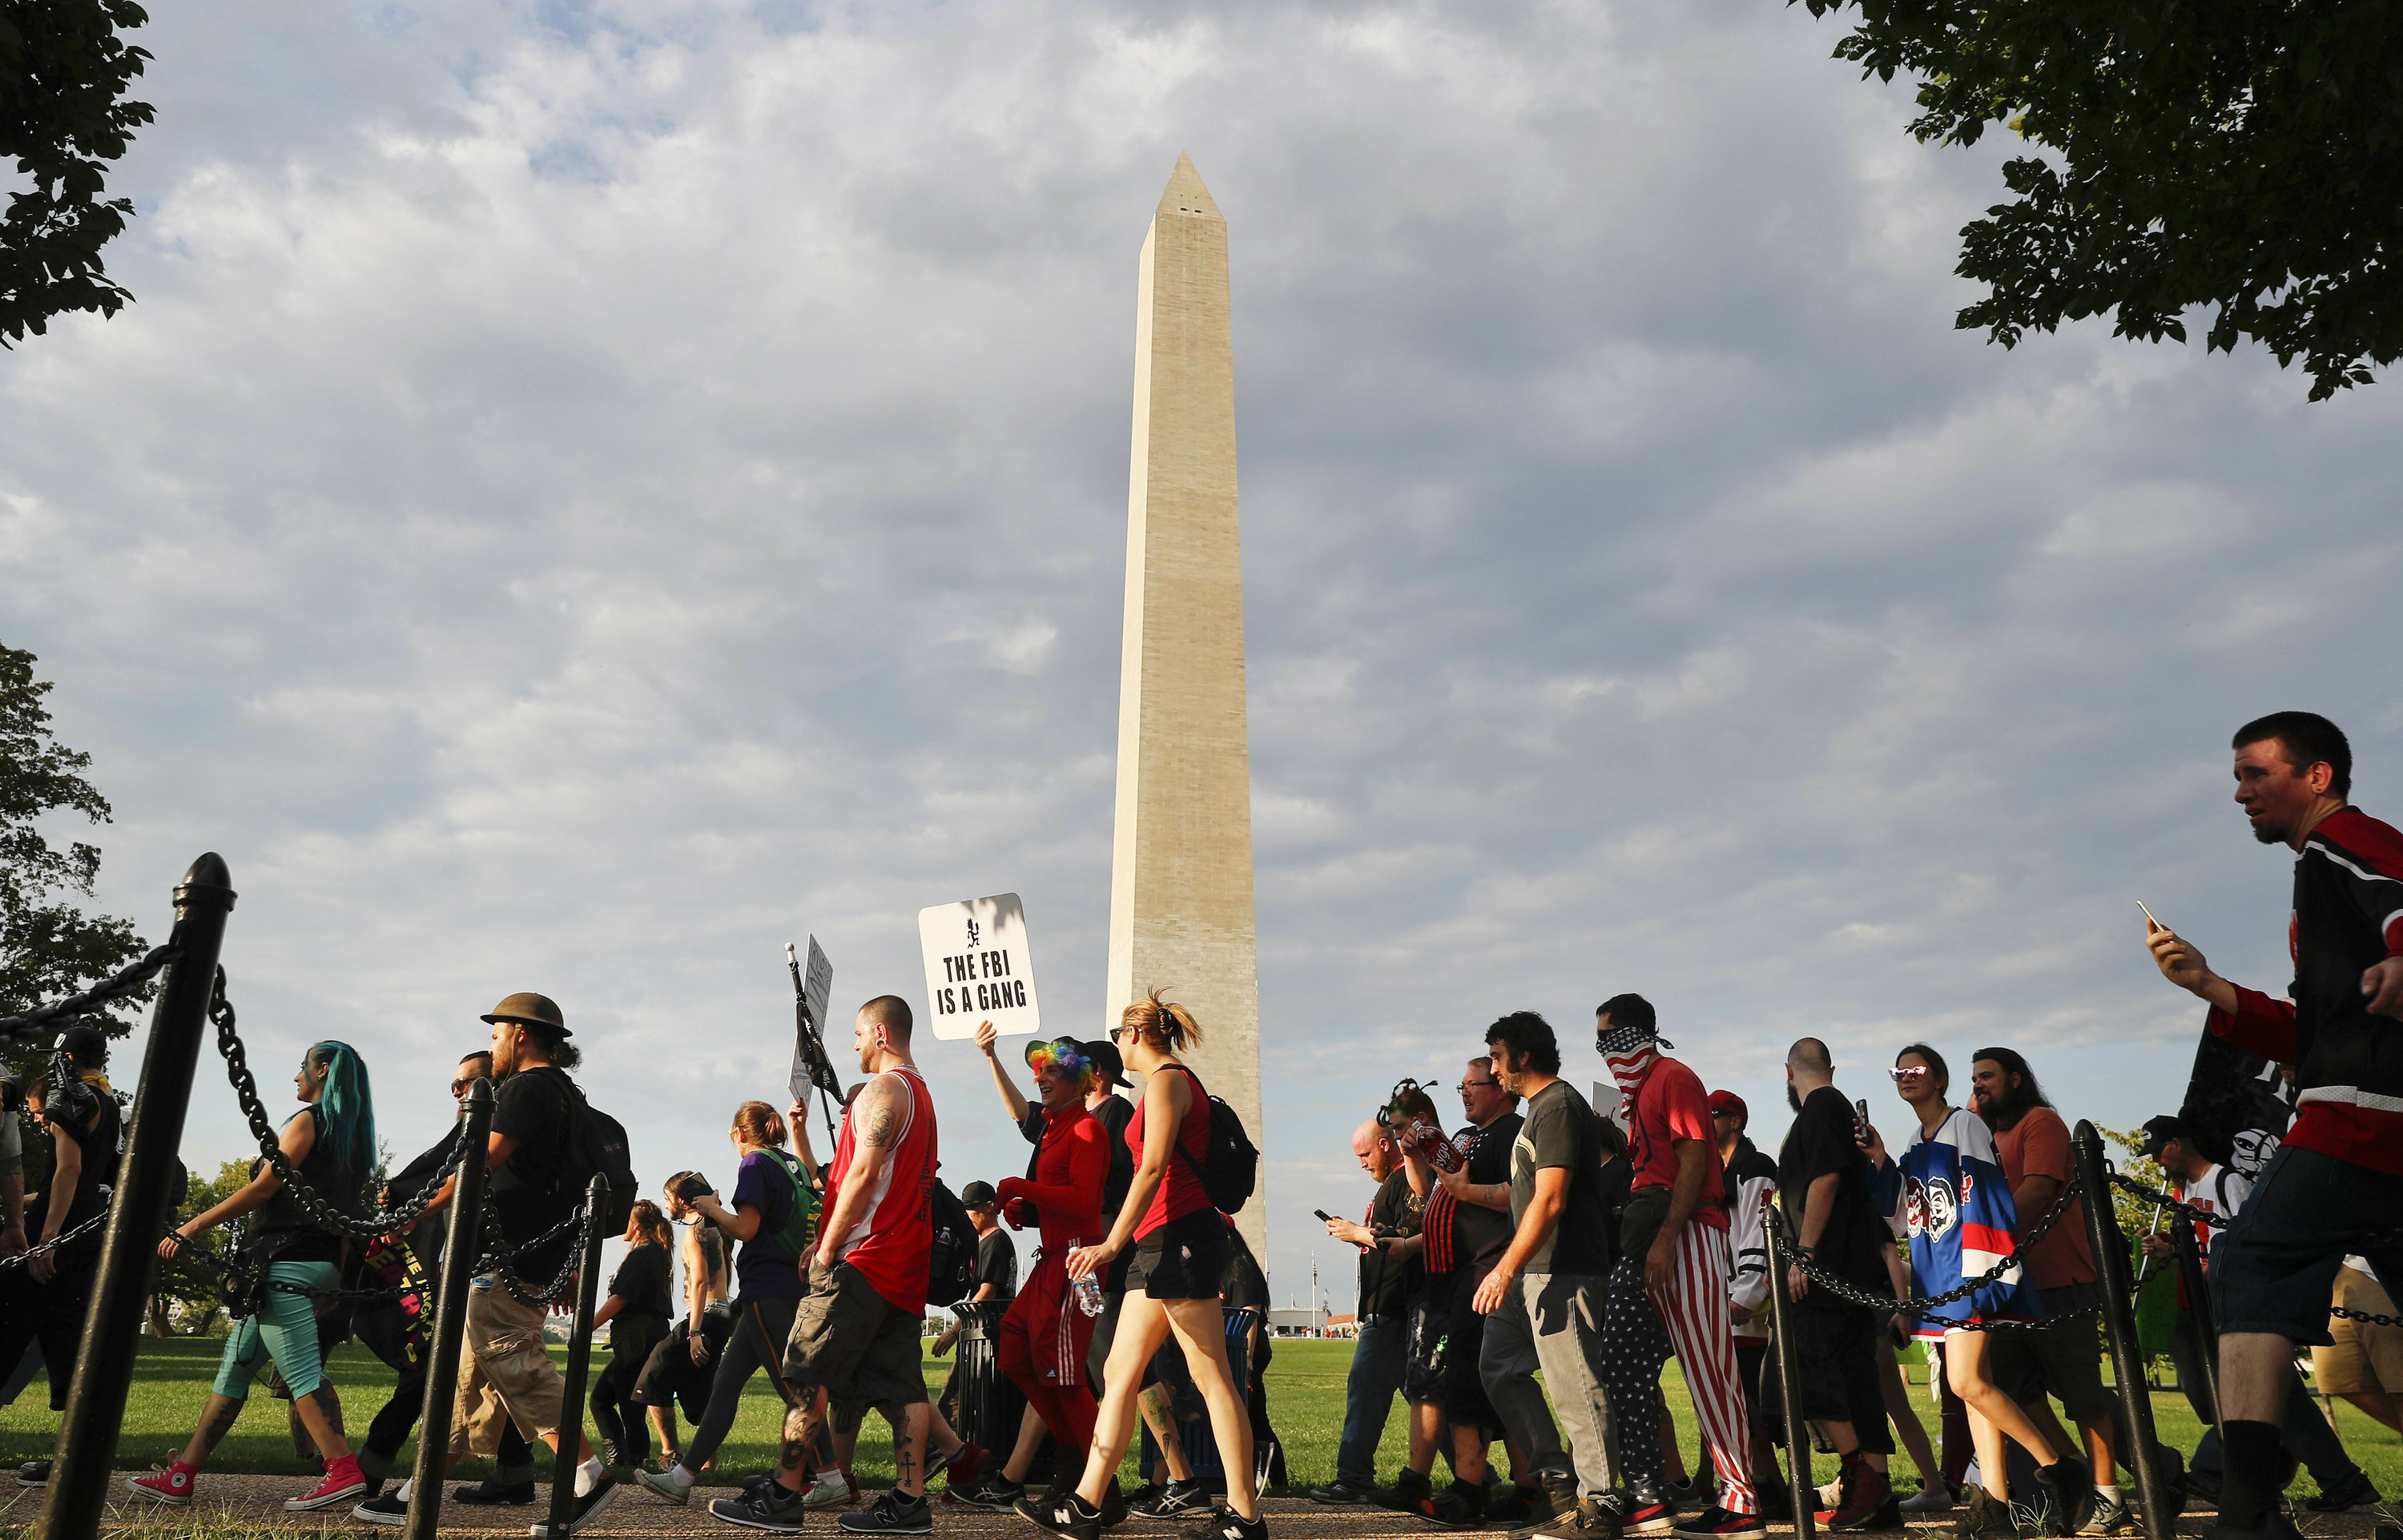 Pro-Trump rally draws hundreds, not thousands to Washington